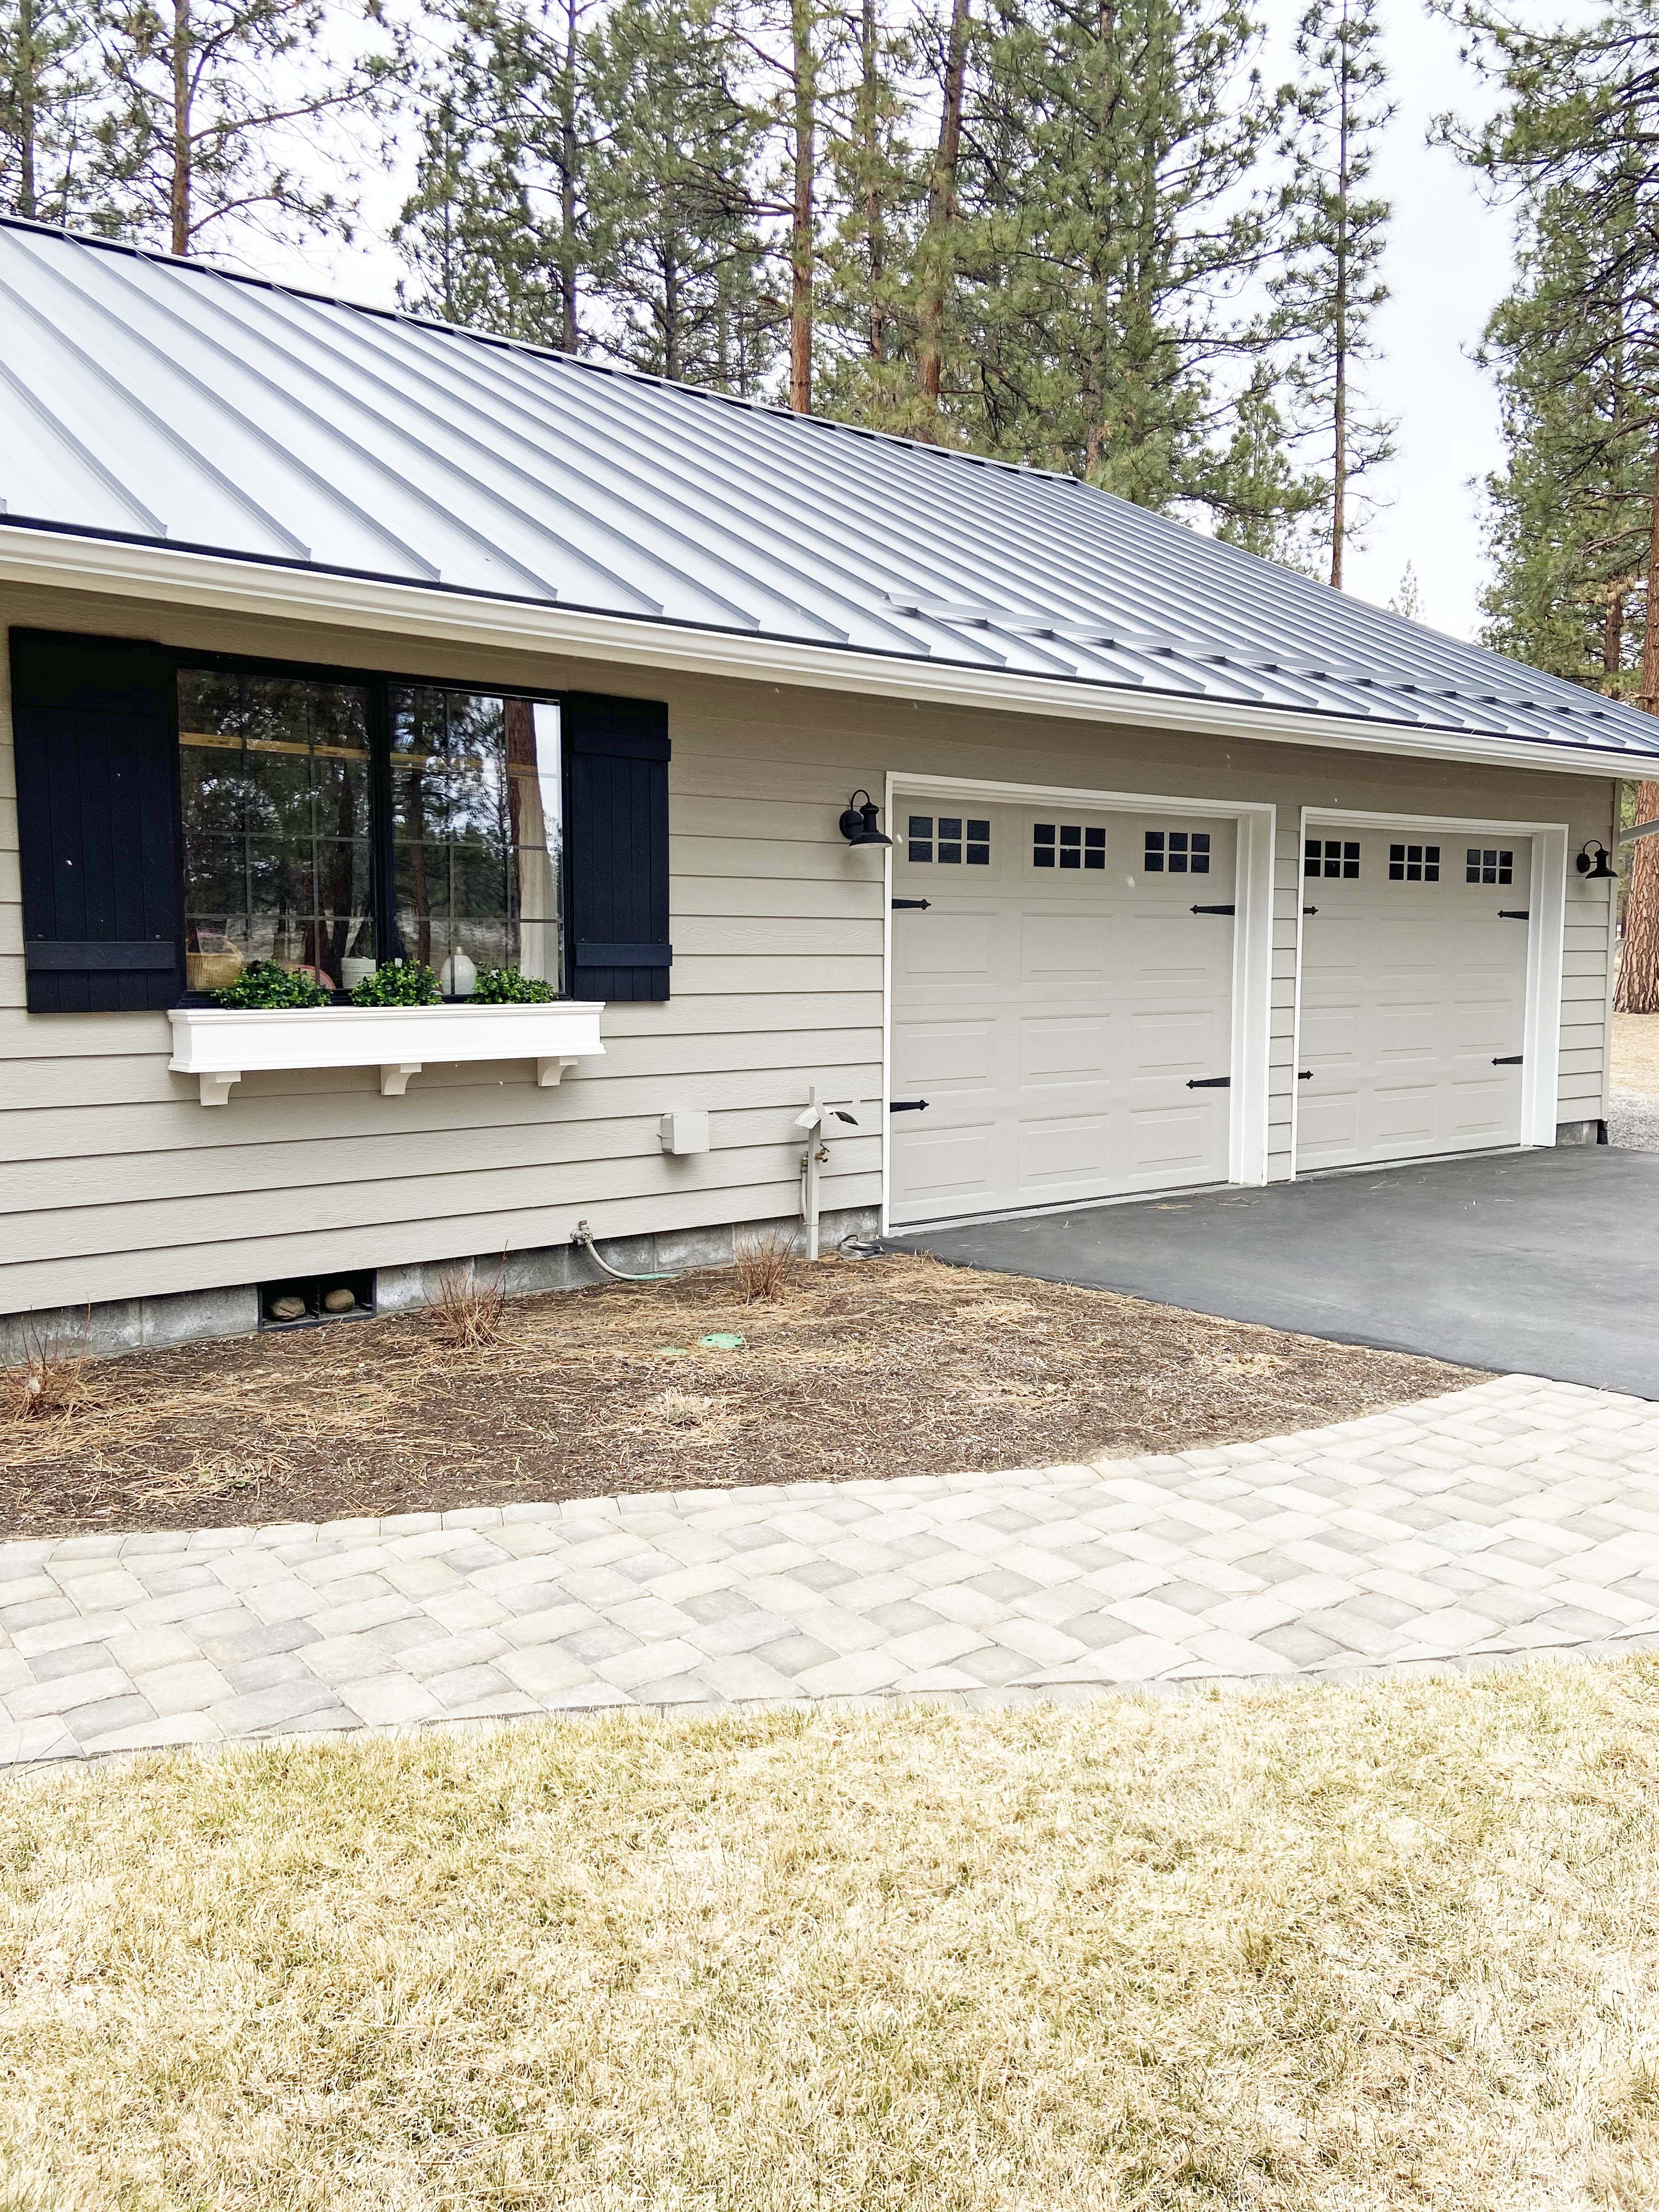 gray house with gray standing seam roof